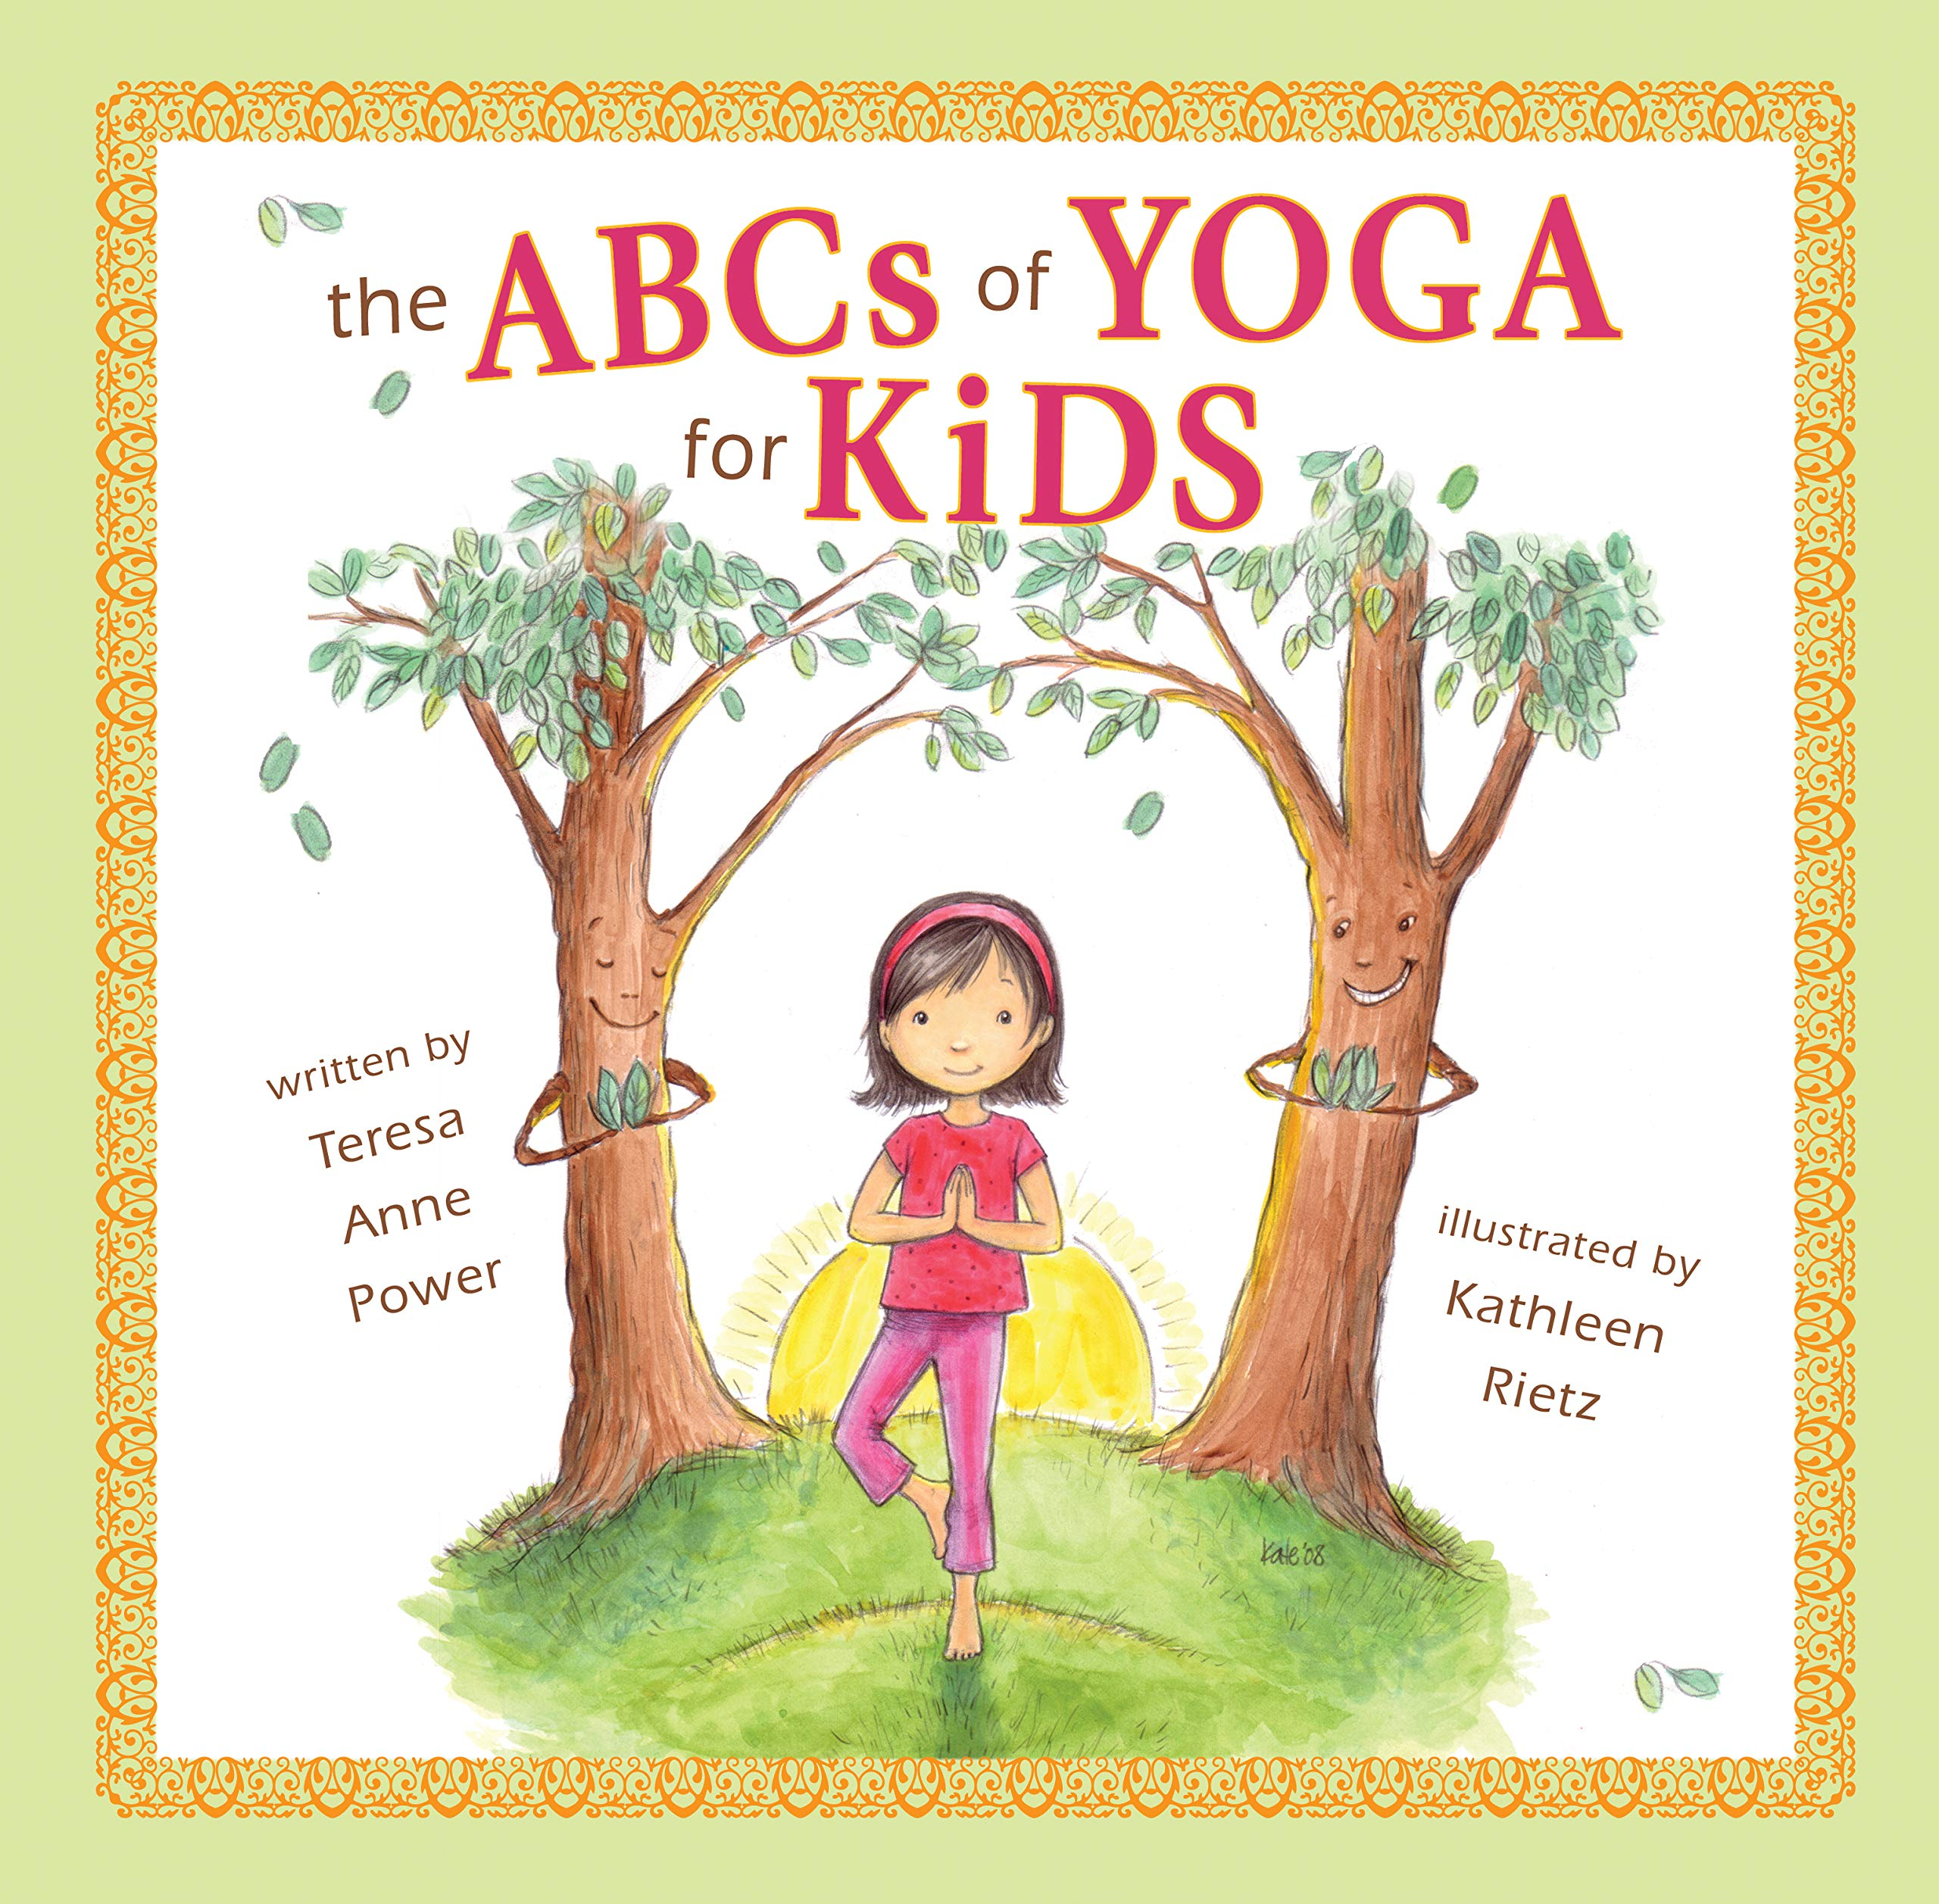 The ABCs of Yoga for Kids Softcover: Teresa Anne Power ...